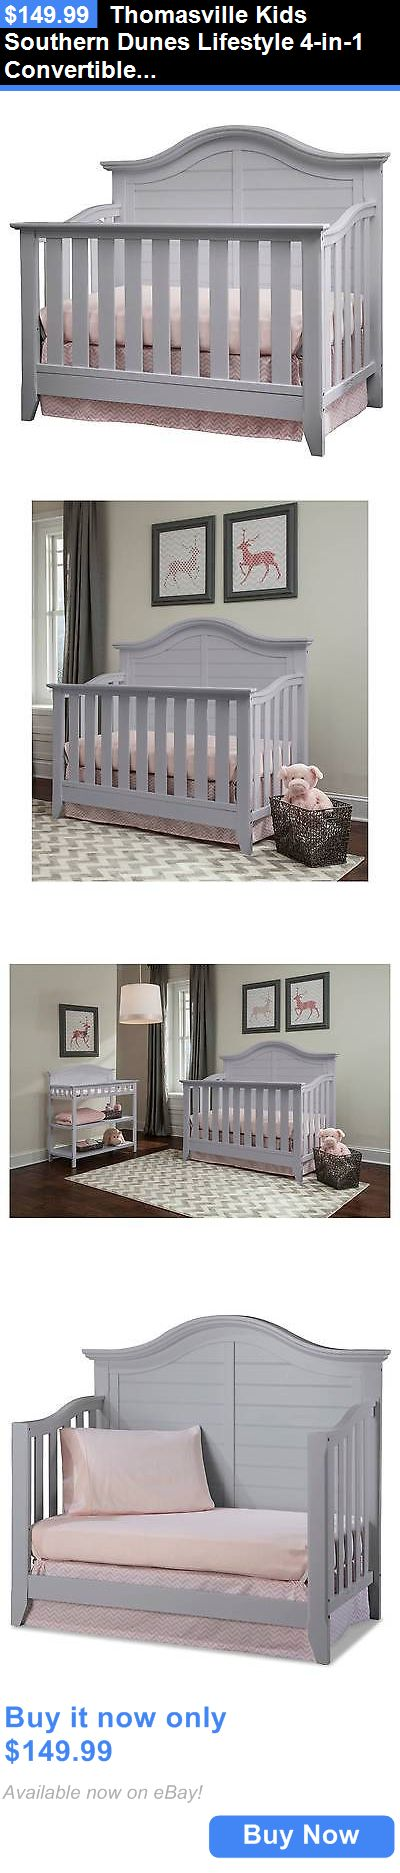 Baby Nursery: Thomasville Kids Southern Dunes Lifestyle 4-In-1 Convertible Crib - Pebble Gray BUY IT NOW ONLY: $149.99